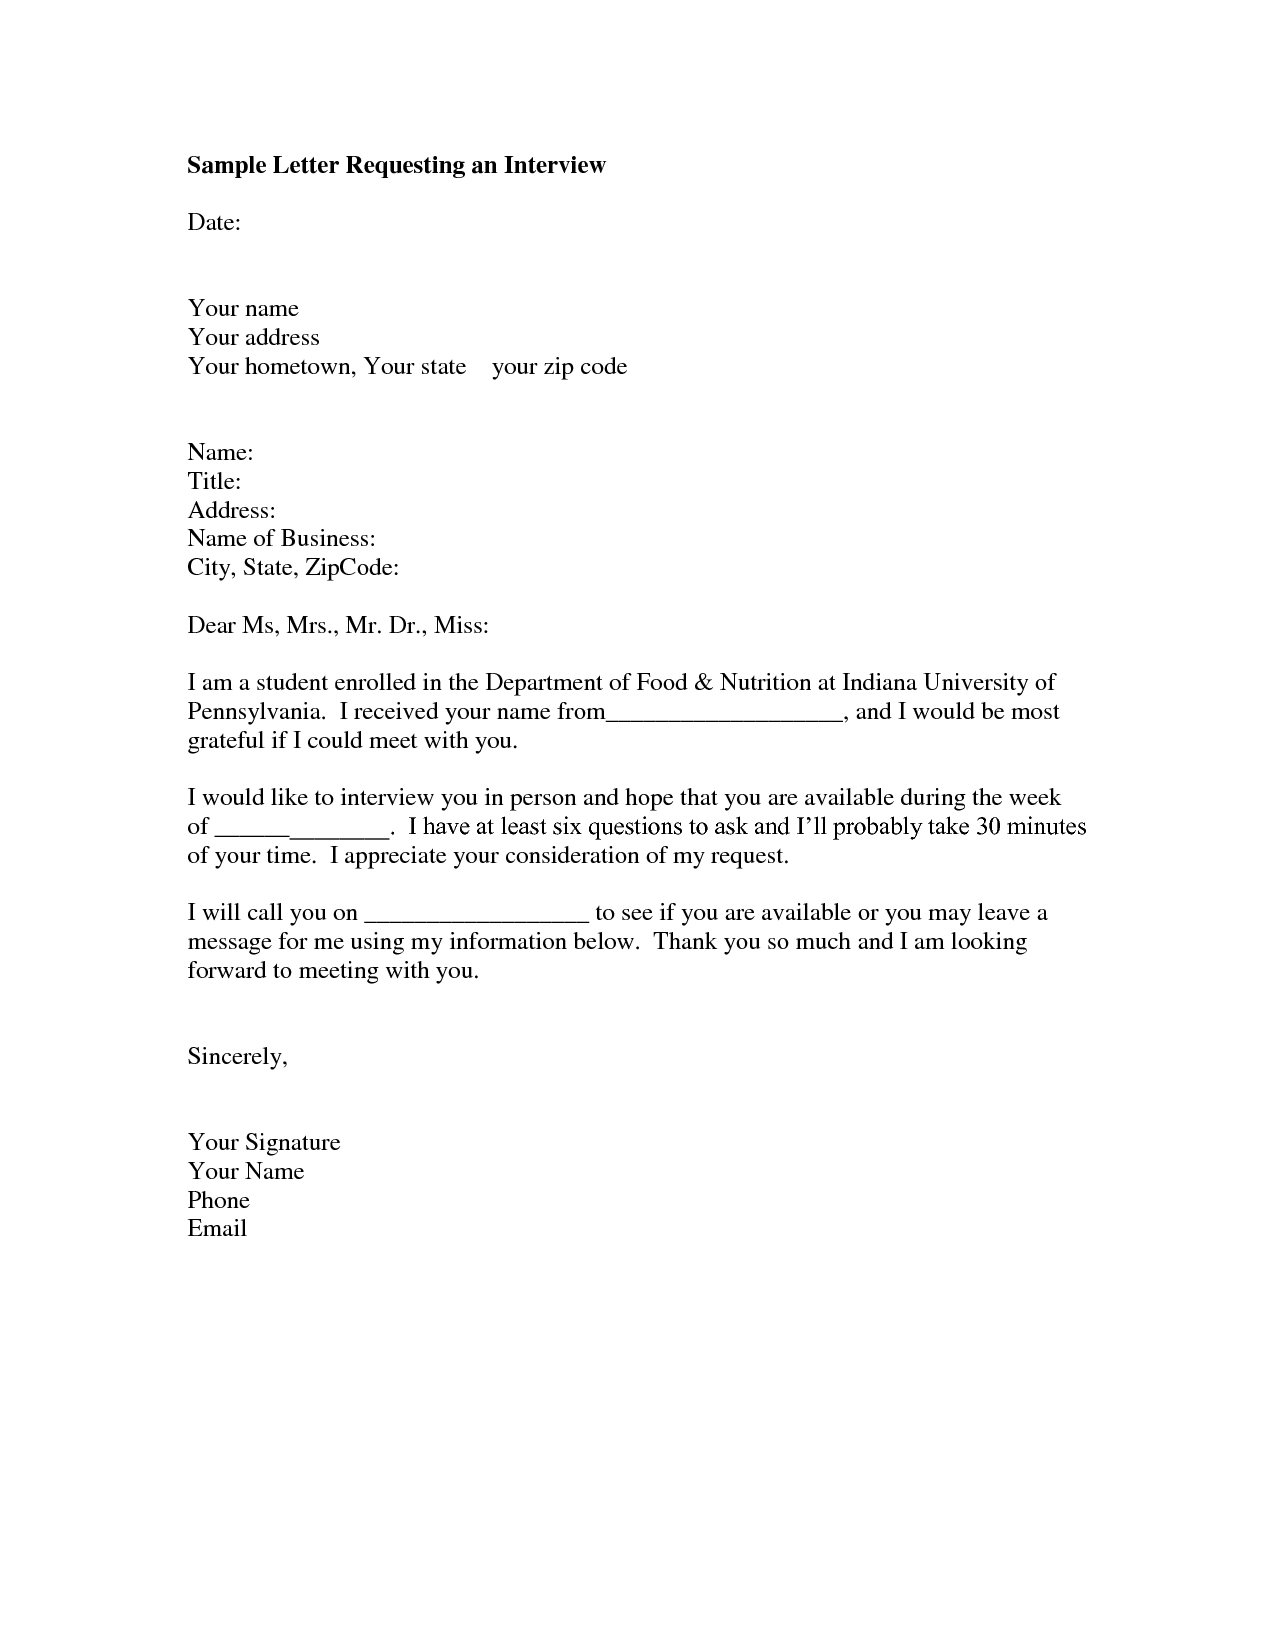 INTERVIEW REQUEST LETTER   Sample Format Of A Letter You Can Use To Request  An Interview With A Prospecitive Employer.